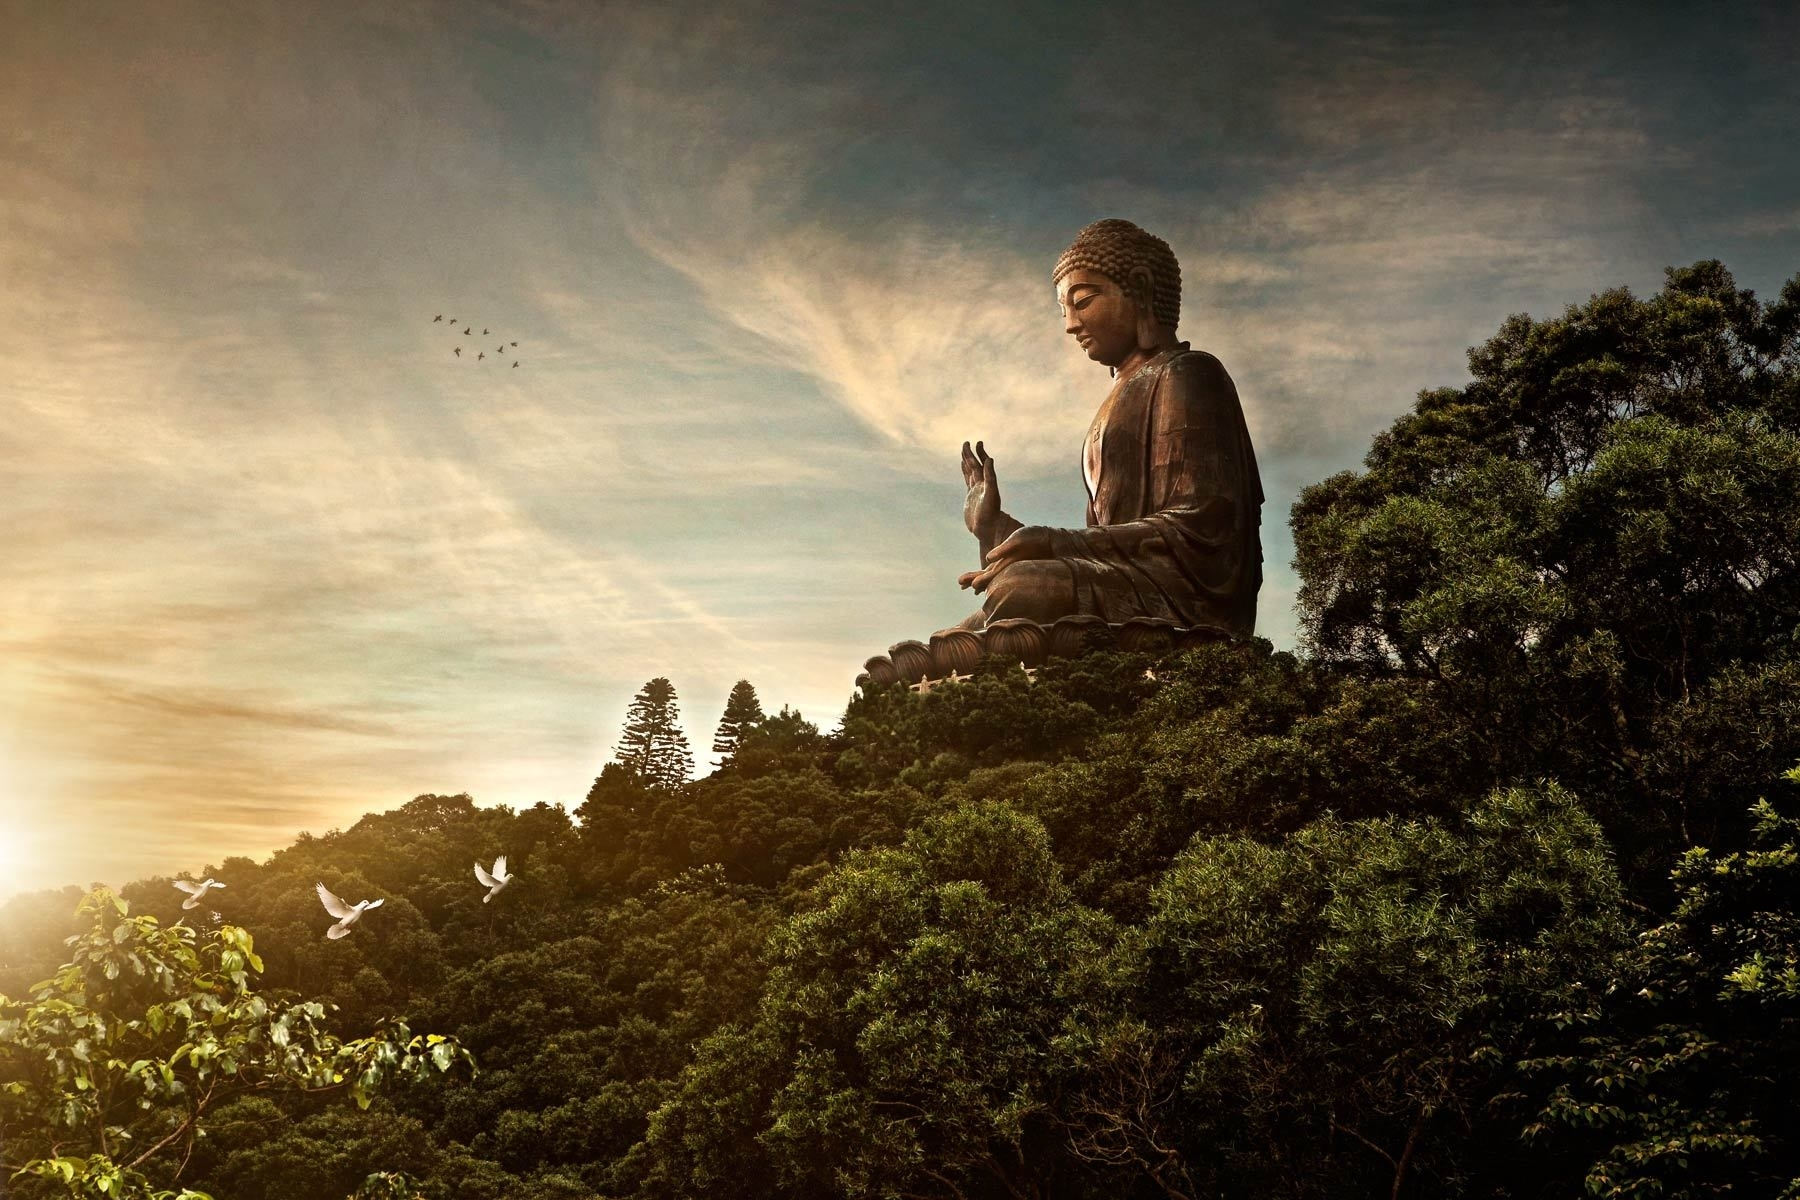 buddha wallpapers, full hdq buddha pictures and wallpapers showcase